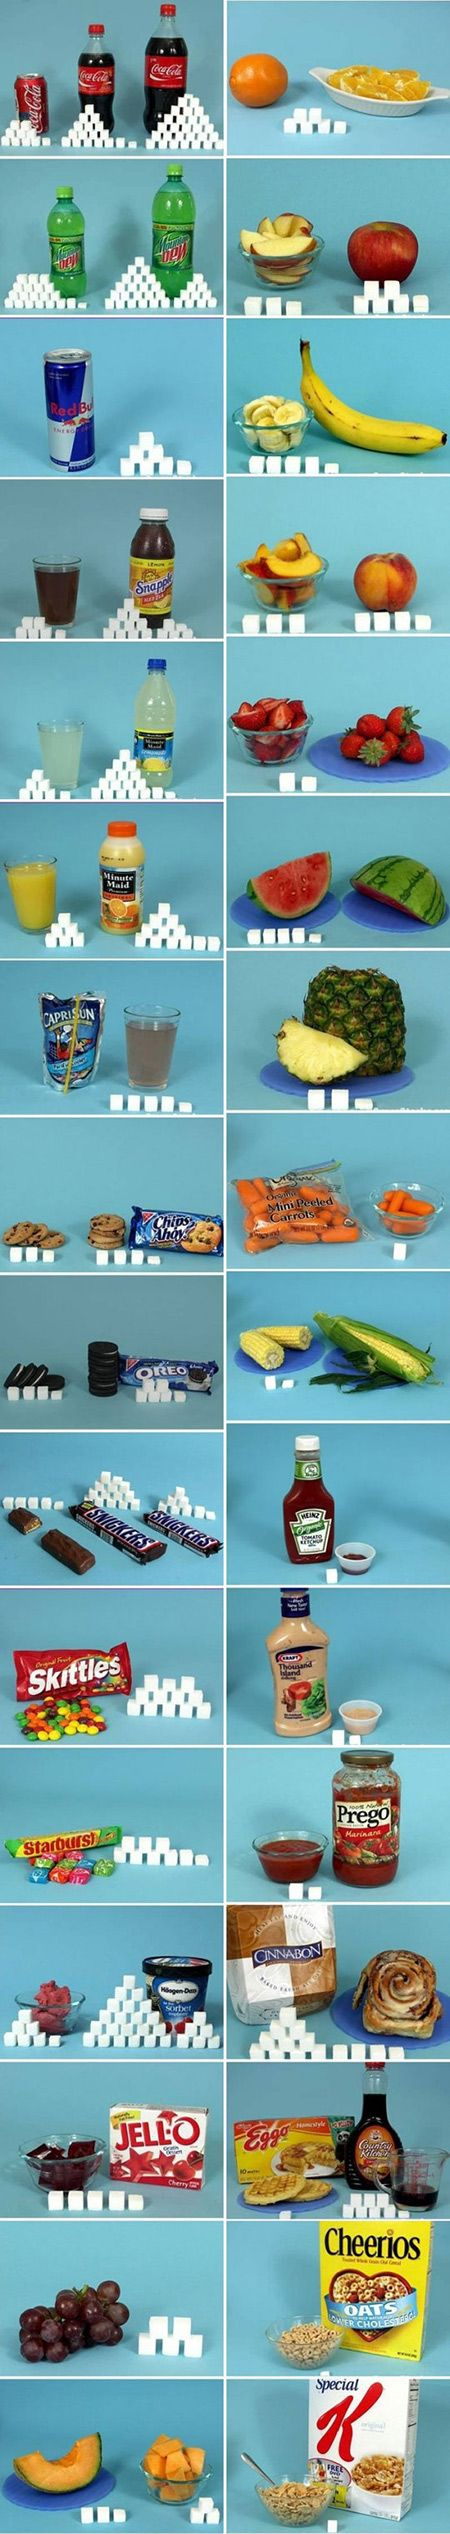 The amount of sugar in foods and beverages we like.